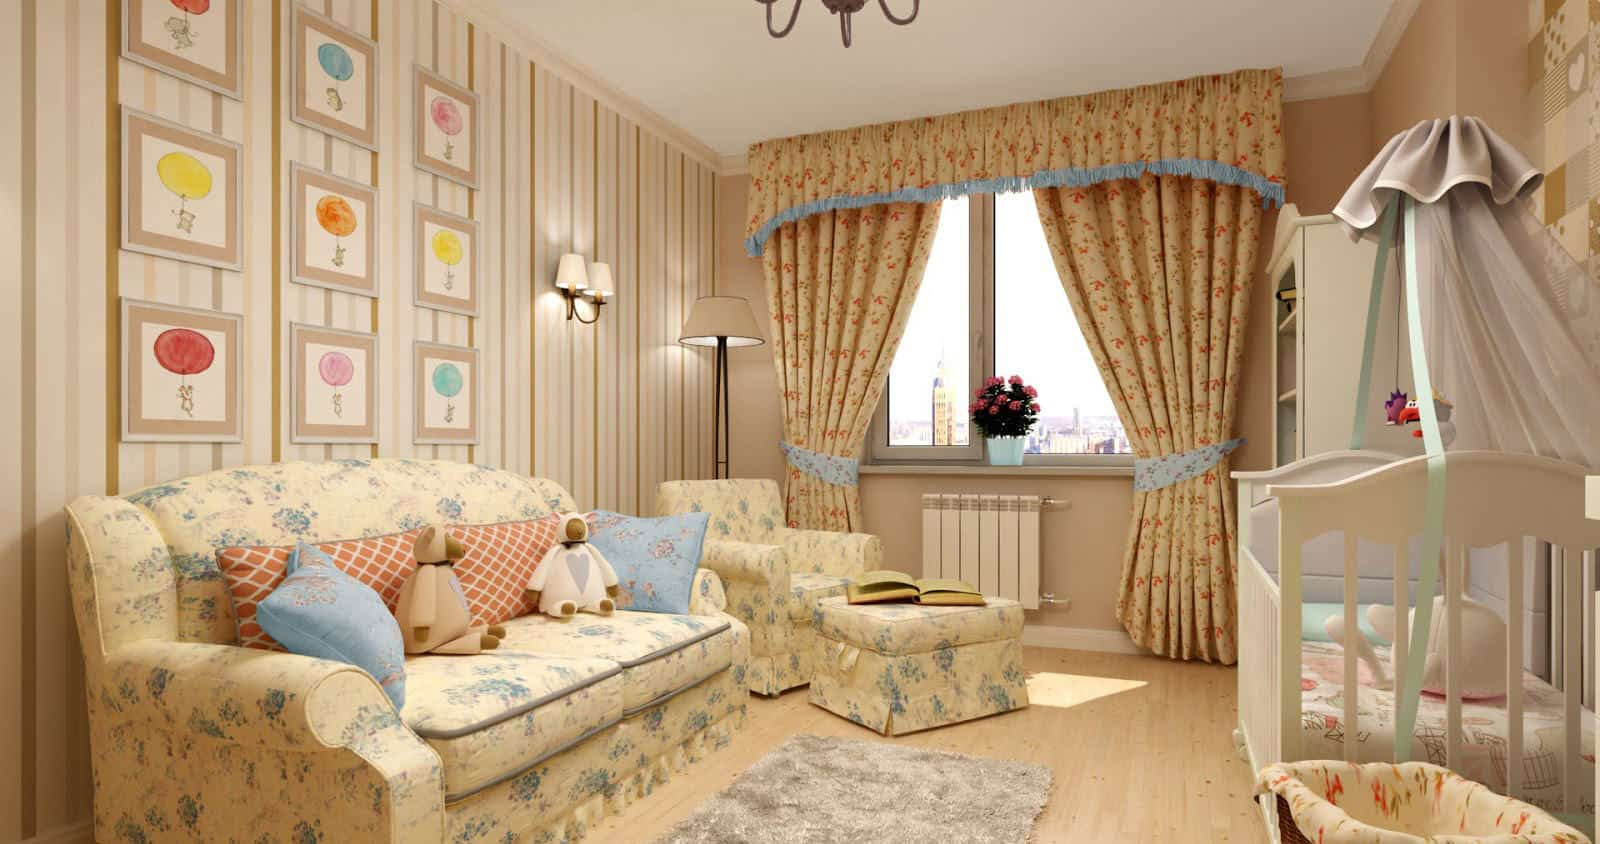 Kids-room-ideas-French-country-decor-Provence-decor-kids-room-decor